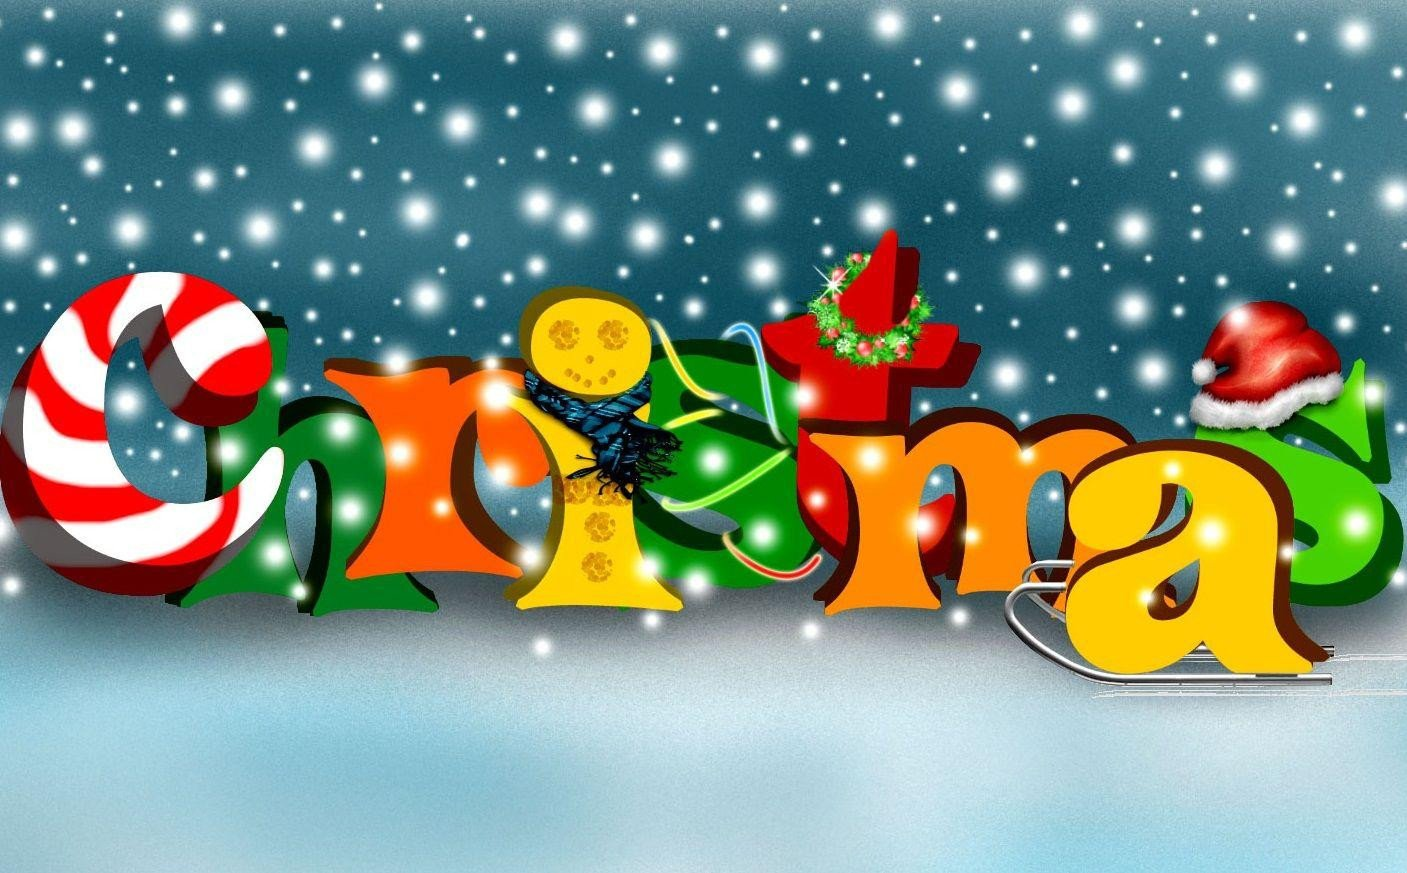 Free Christmas Desktop Wallpaper Cute Christmas Desktop Backgrounds Wallpaper Cave